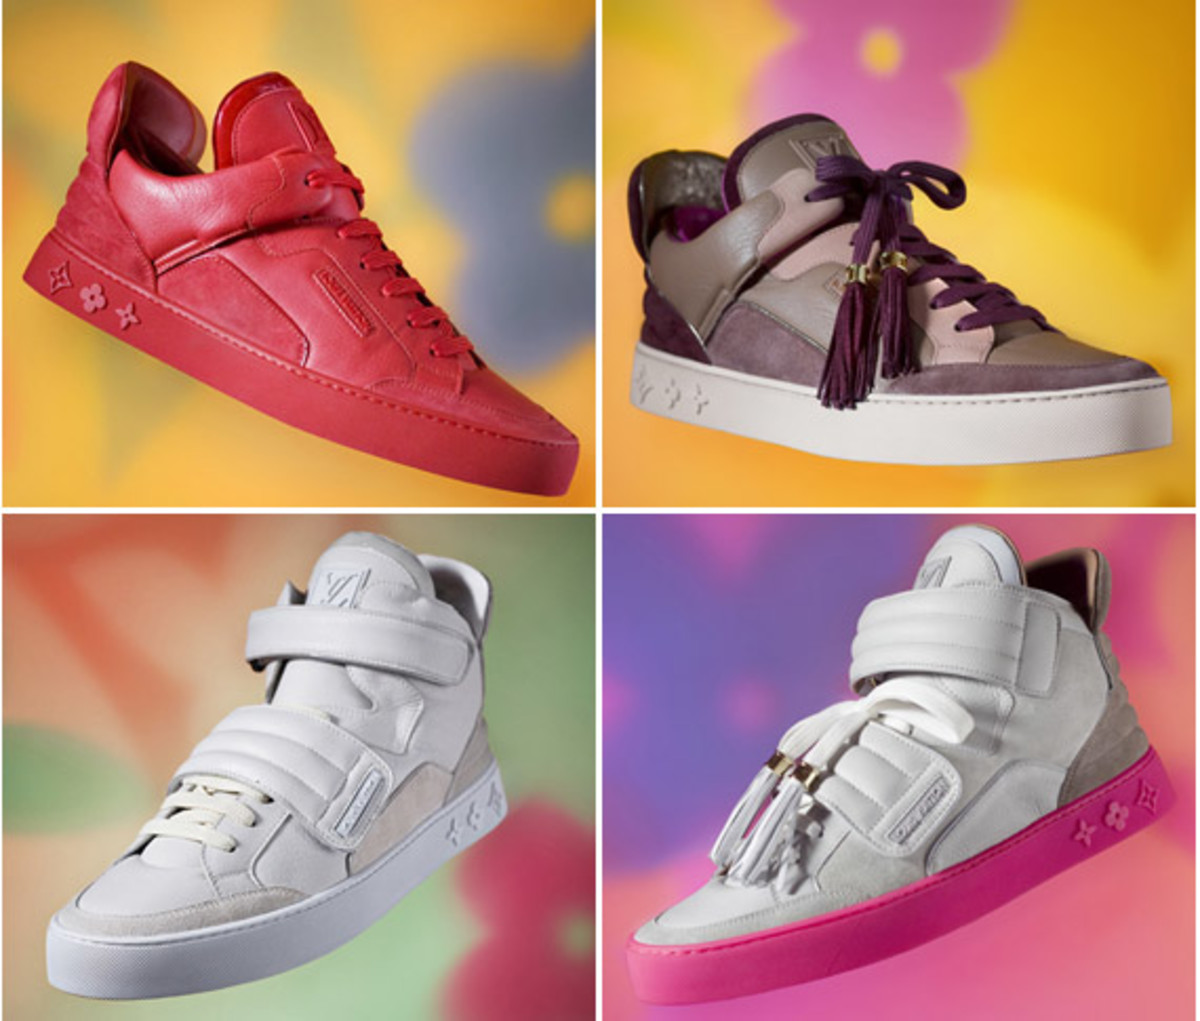 8e3224228b4f5 Louis Vuitton x Kanye West - Sneaker Collection Preview - Freshness Mag